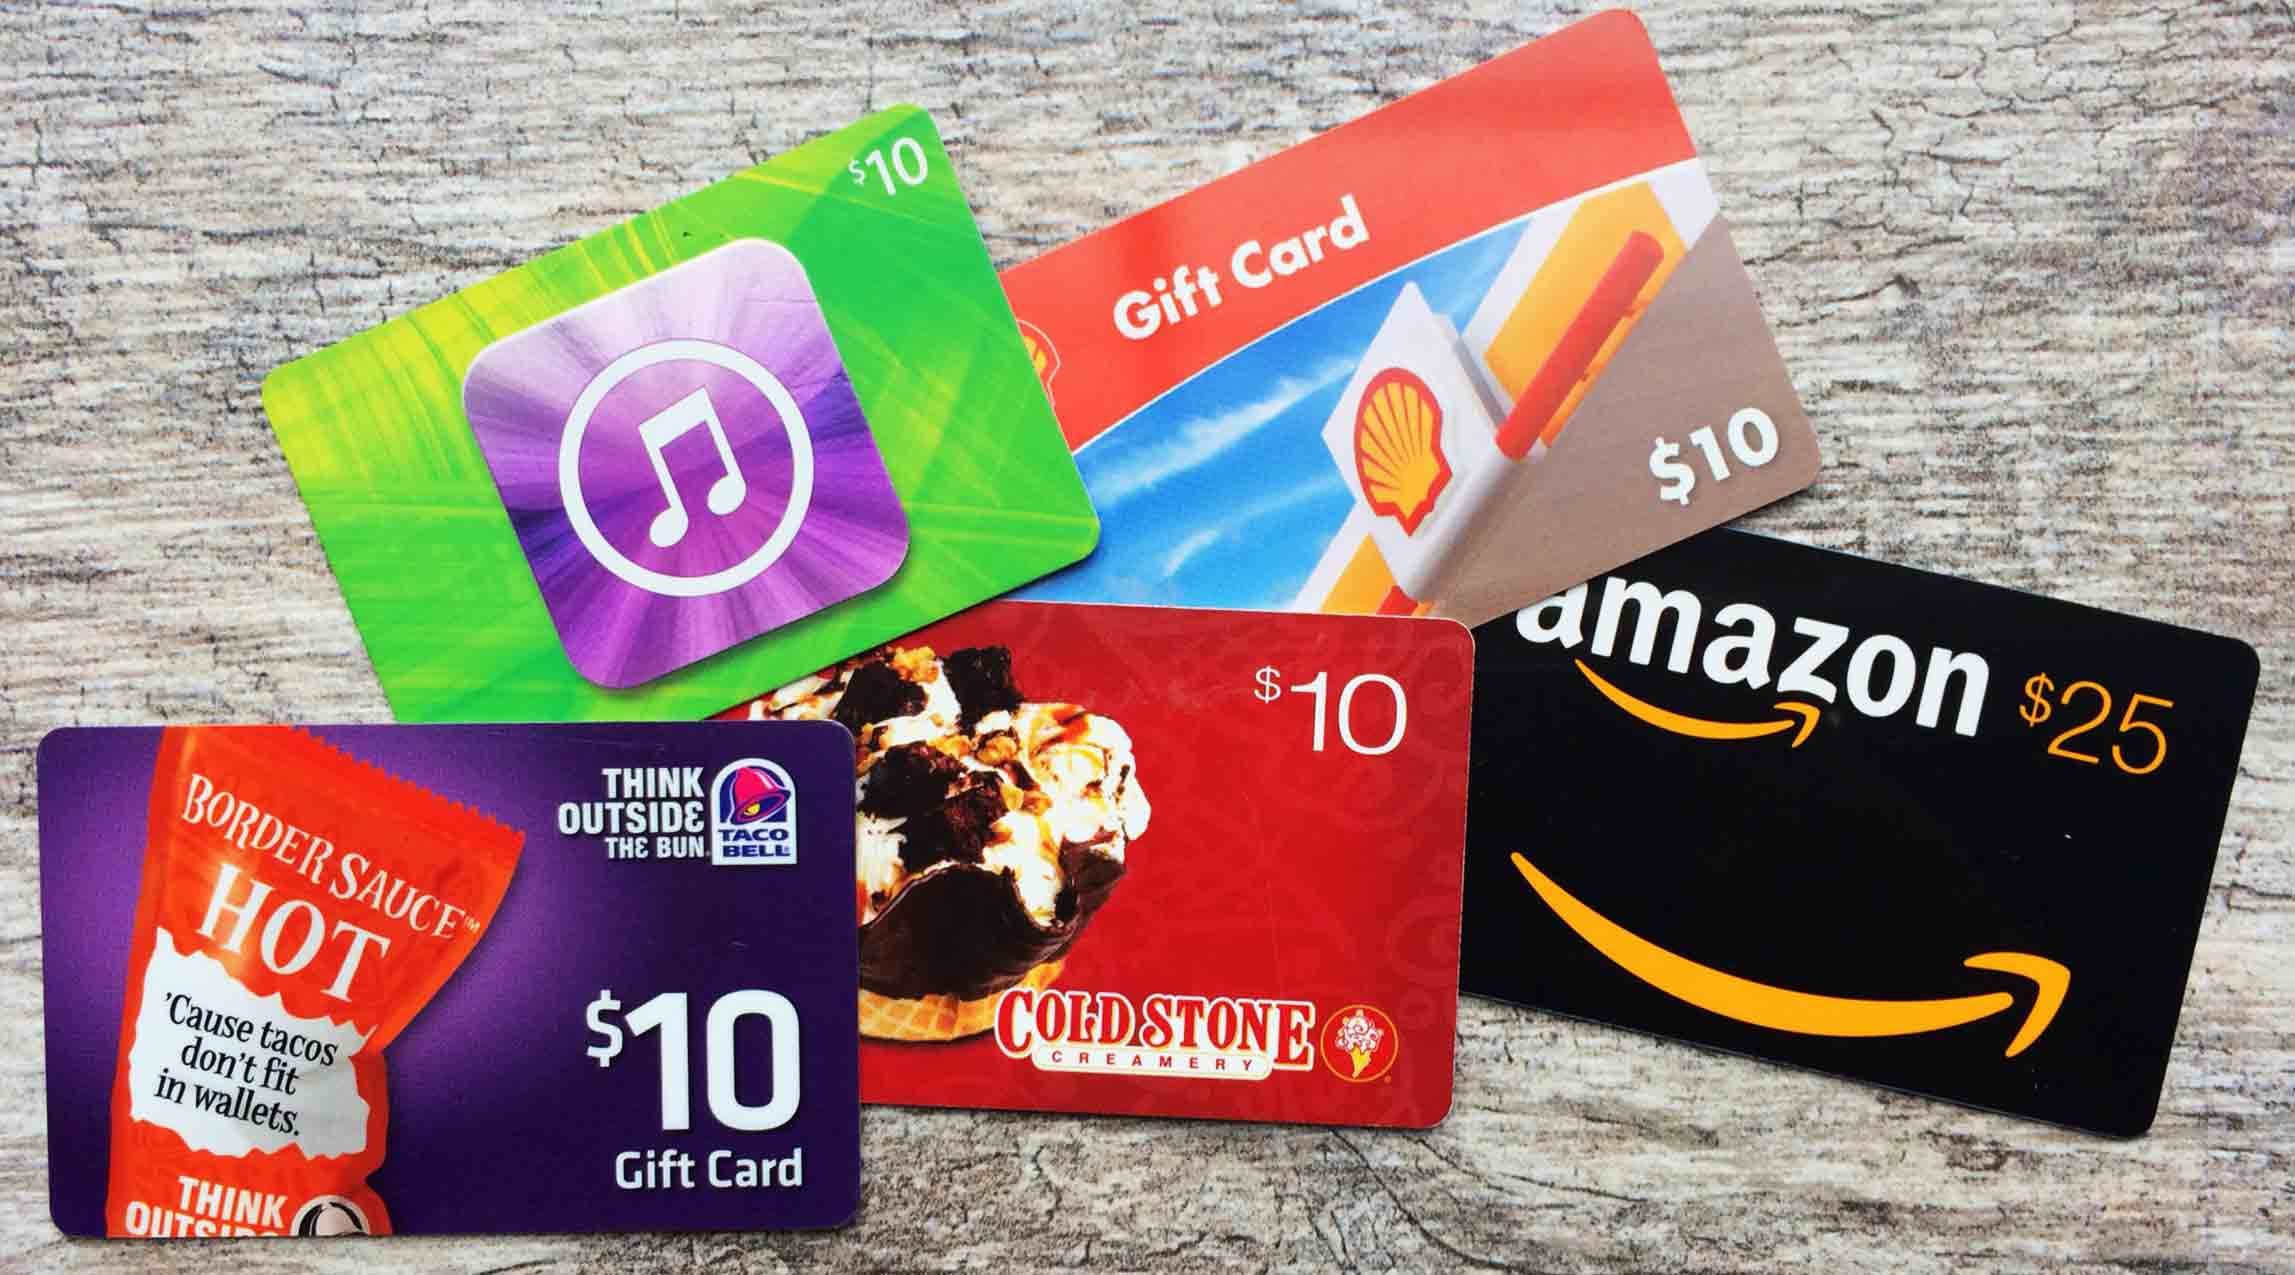 How Much Money Should I Put on a Gift Card? | GCG